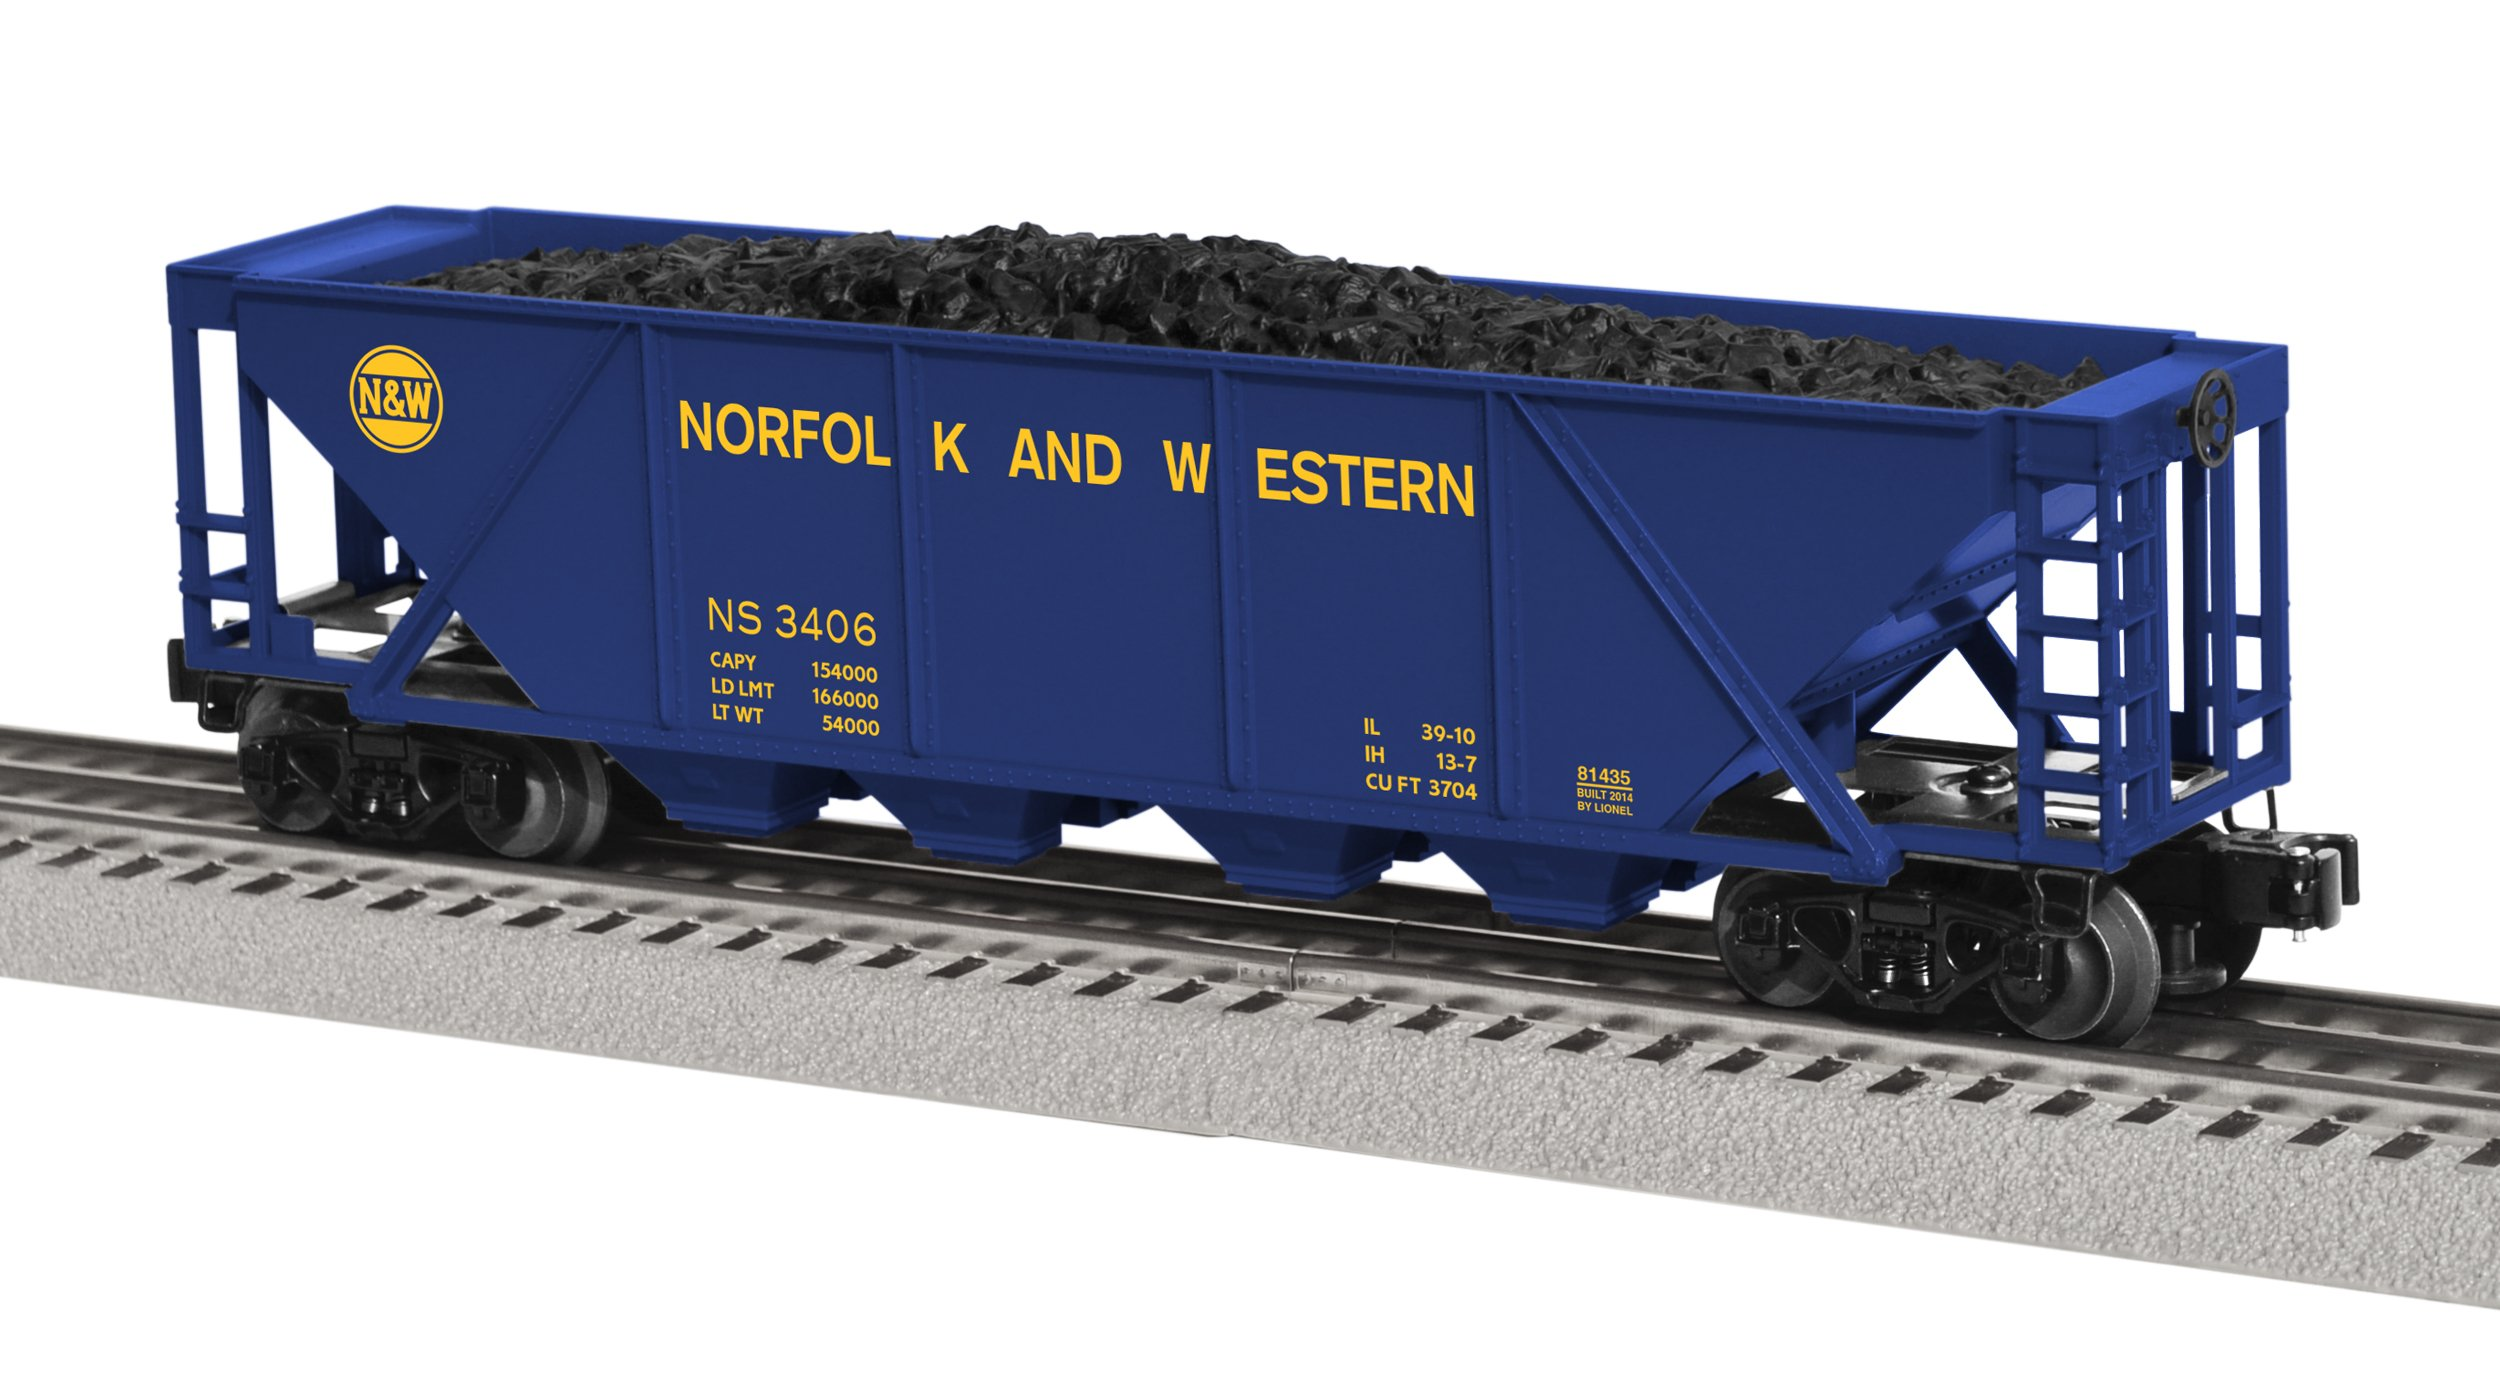 Lionel Trains Norfolk Southern Heritage N&W 4-Bay Hopper Car With Coal Load 2